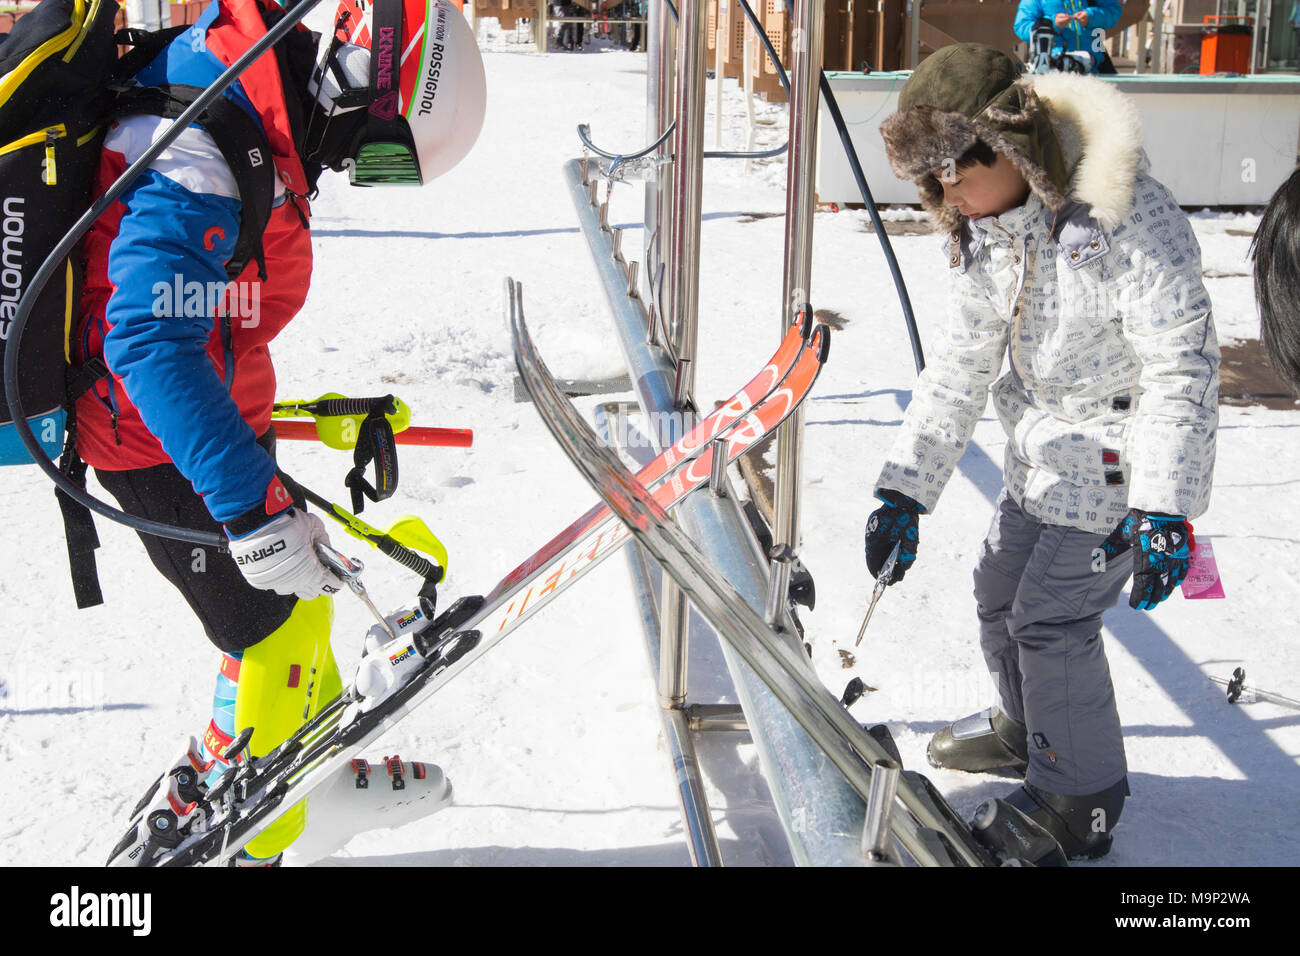 Two children are cleaning their skis with pressurized air pistols in the Alpensia resort, Gangwon-do region, South Korea.  The Alpensia Resort is a ski resort and a tourist attraction. It is located on the territory of the township of Daegwallyeong-myeon, in the county of Pyeongchang, hosting the Winter Olympics in February 2018.  The ski resort is approximately 2.5 hours from Seoul or Incheon Airport by car, predominantly all motorway.   Alpensia has six slopes for skiing and snowboarding, with runs up to 1.4 km (0.87 mi) long, for beginners and advanced skiers, and an area reserved for - Stock Image